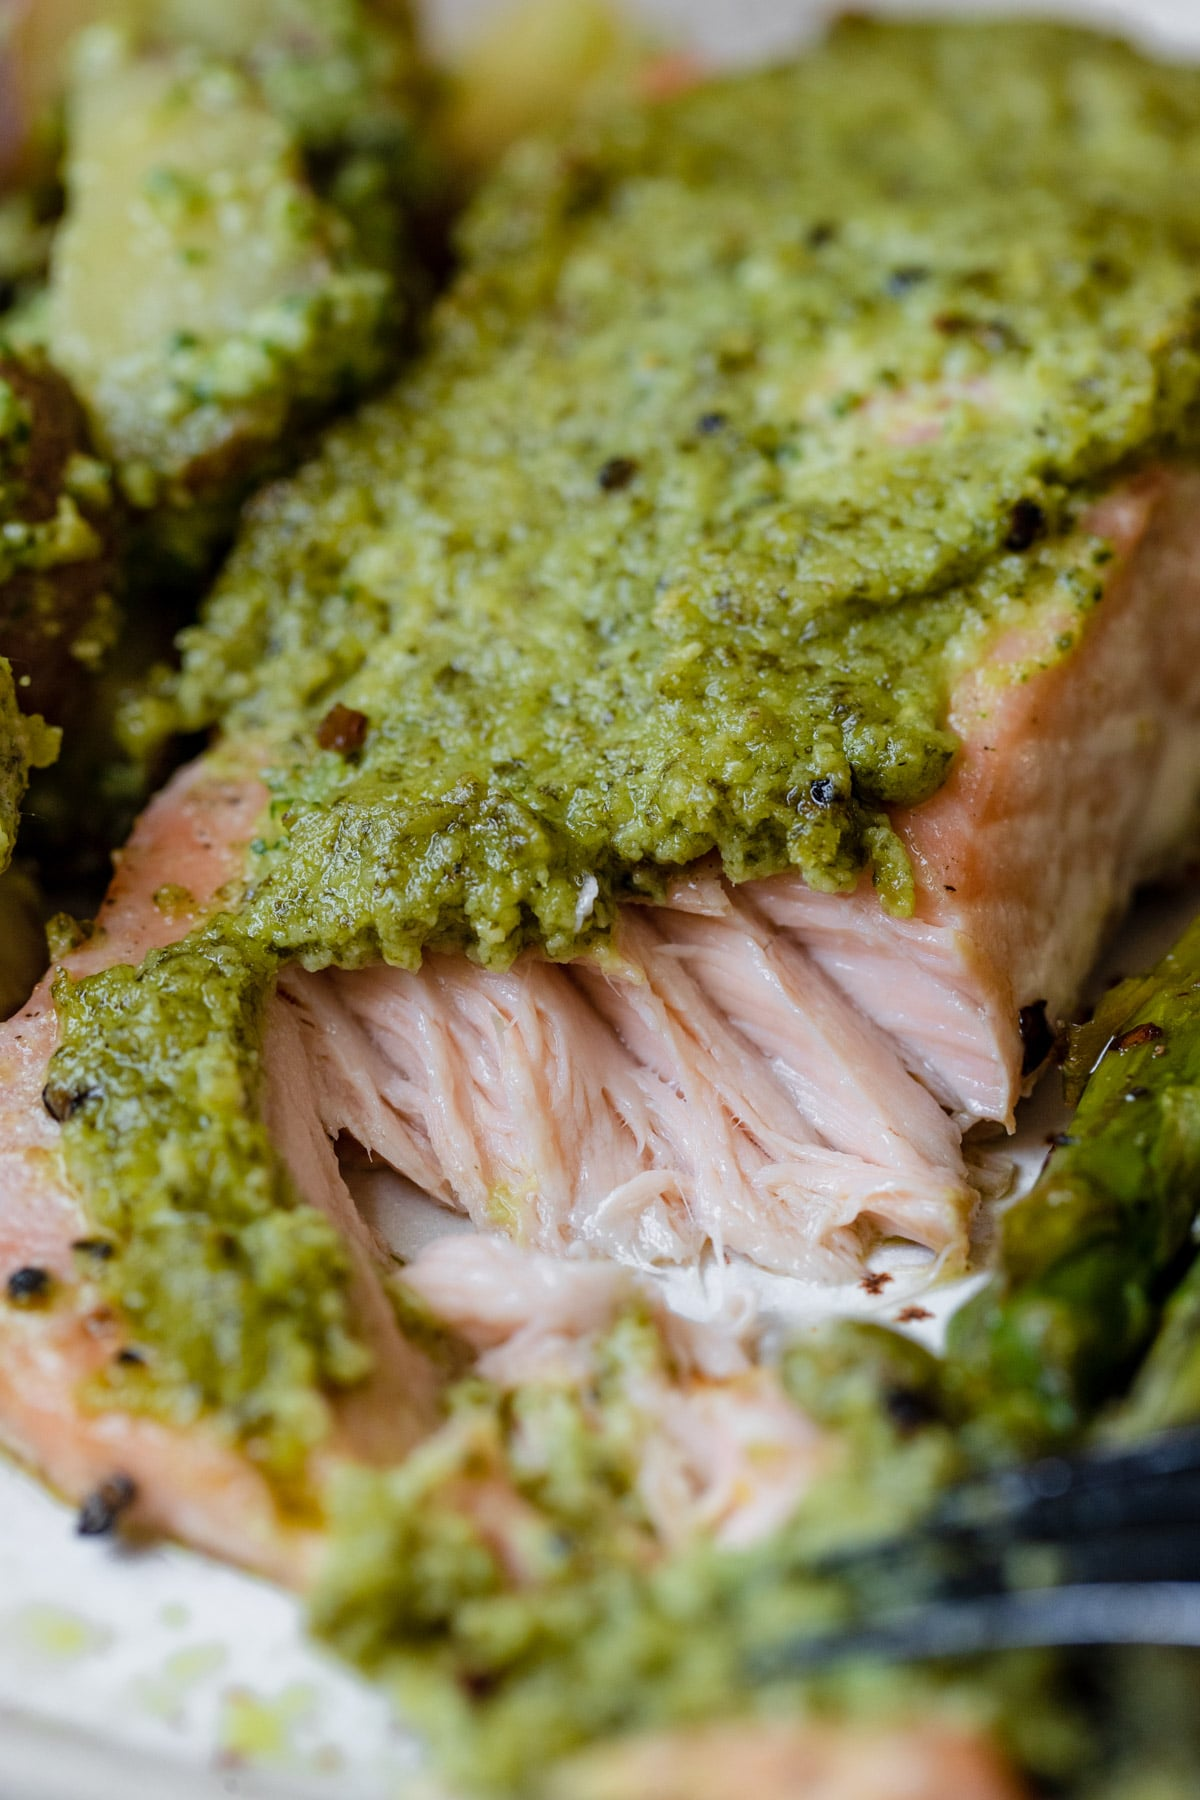 an up close image of salmon topped with a homemade pesto on a sheet pan